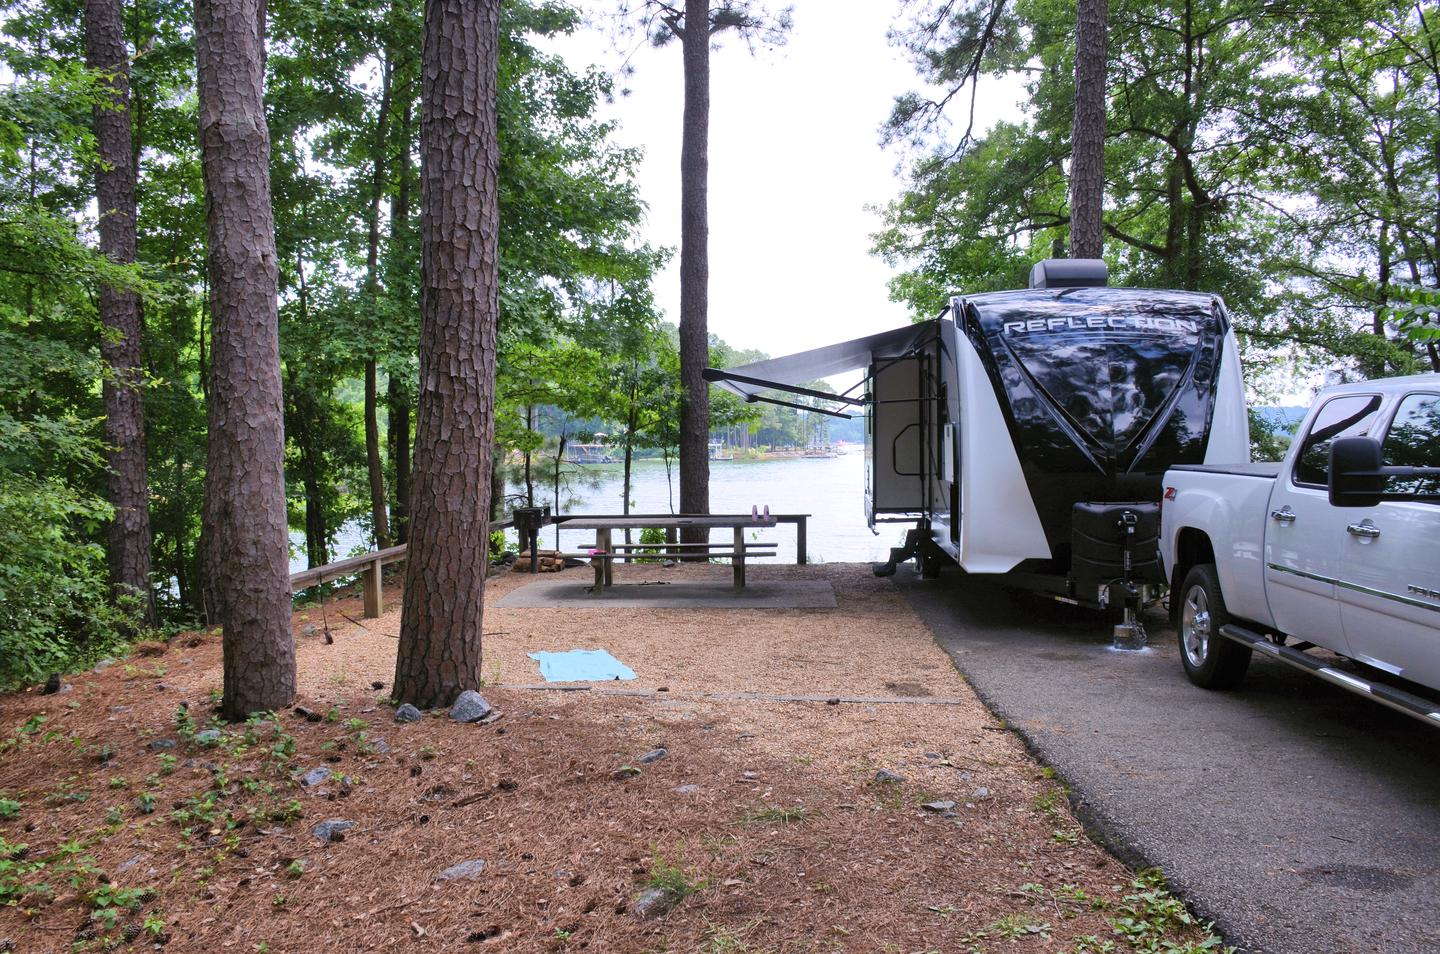 Awning-side clearance, campsite view..Victoria Campground, campsite 25